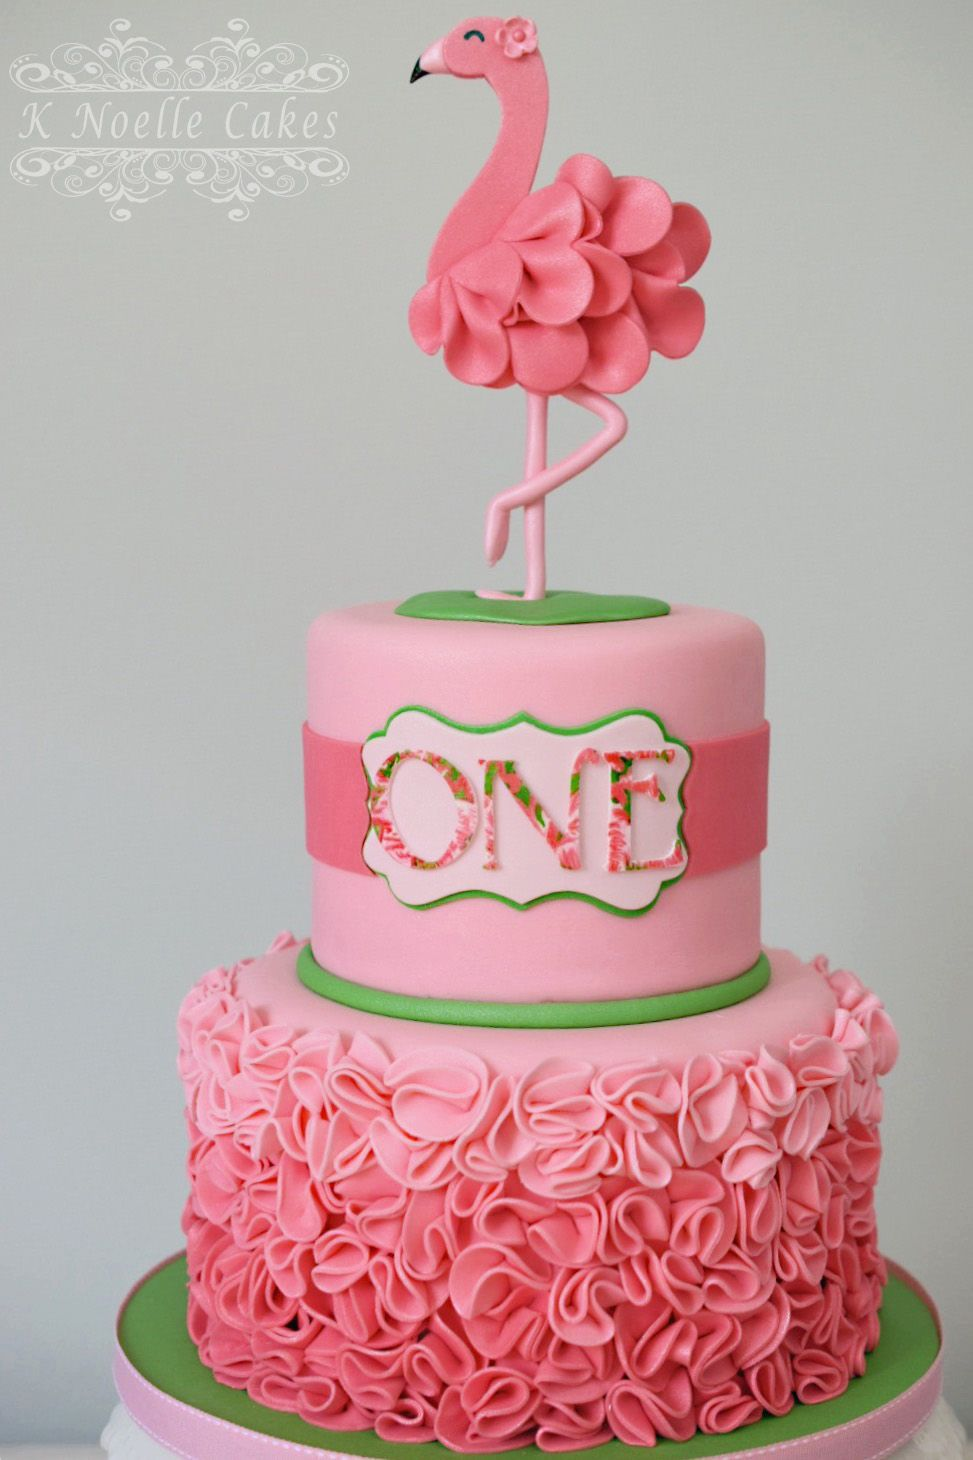 Peachy Flamingo Theme Cake By K Noelle Cakes Flamingo Birthday Cake Personalised Birthday Cards Veneteletsinfo